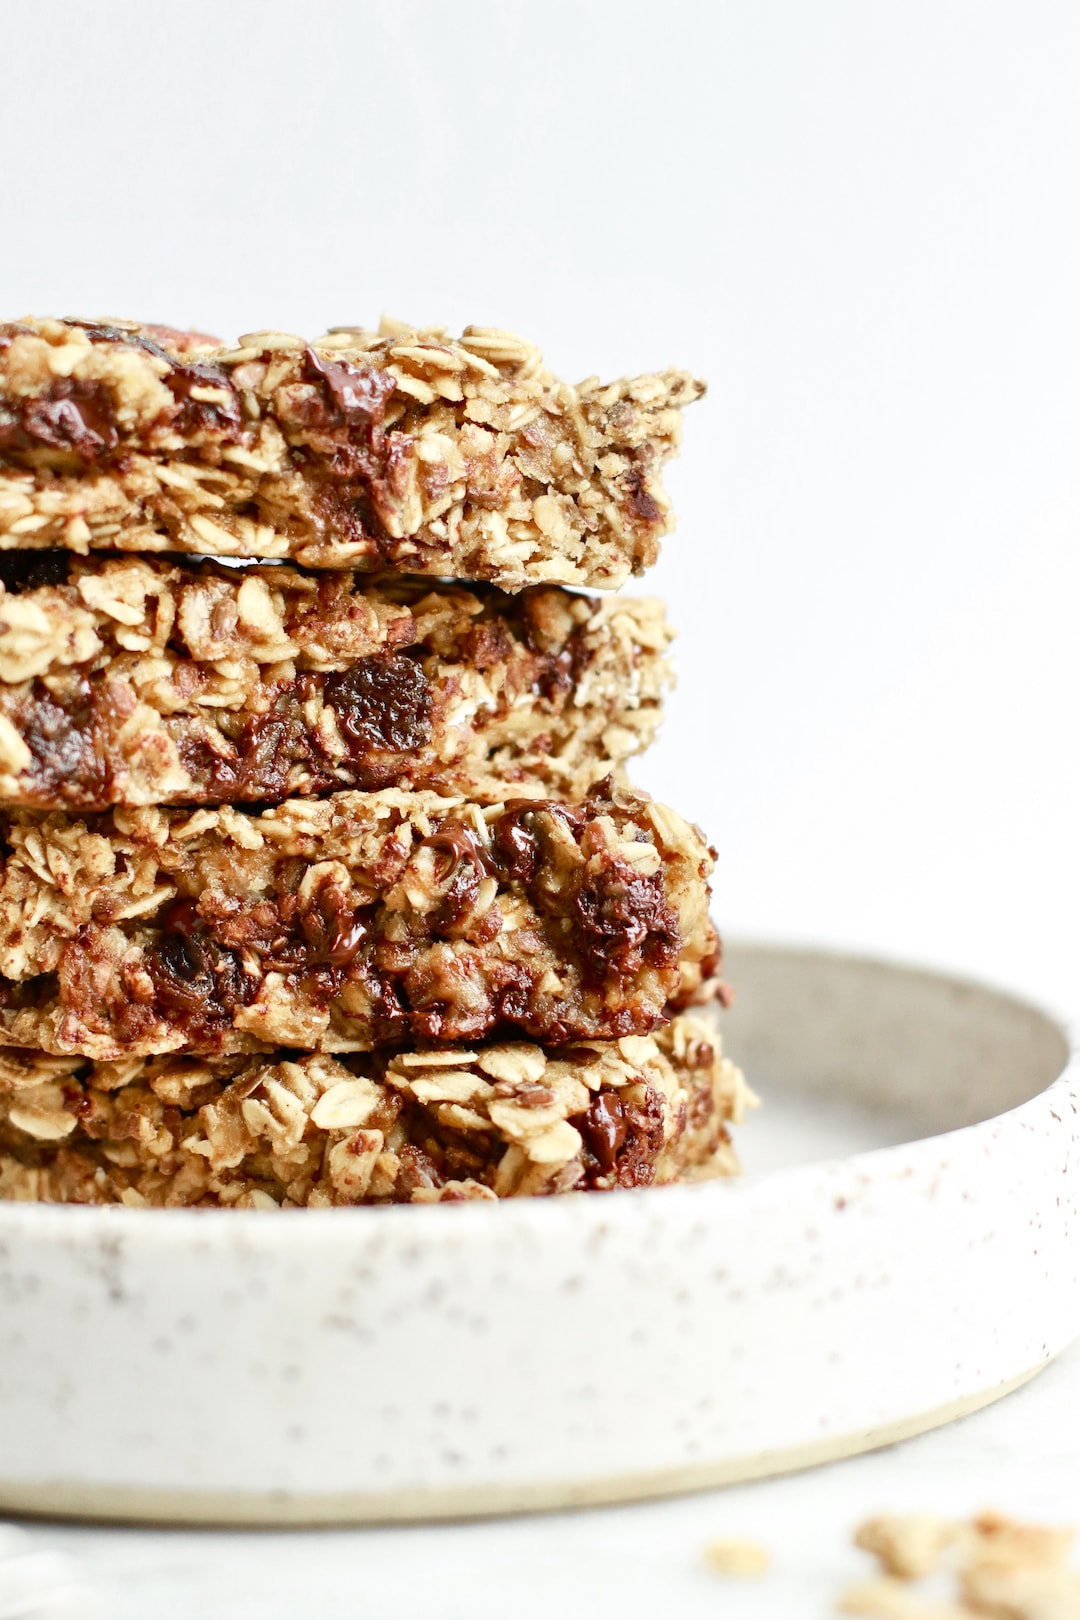 Gluten Free and Dairy Free Healthy Chocolate Chip Granola Bars